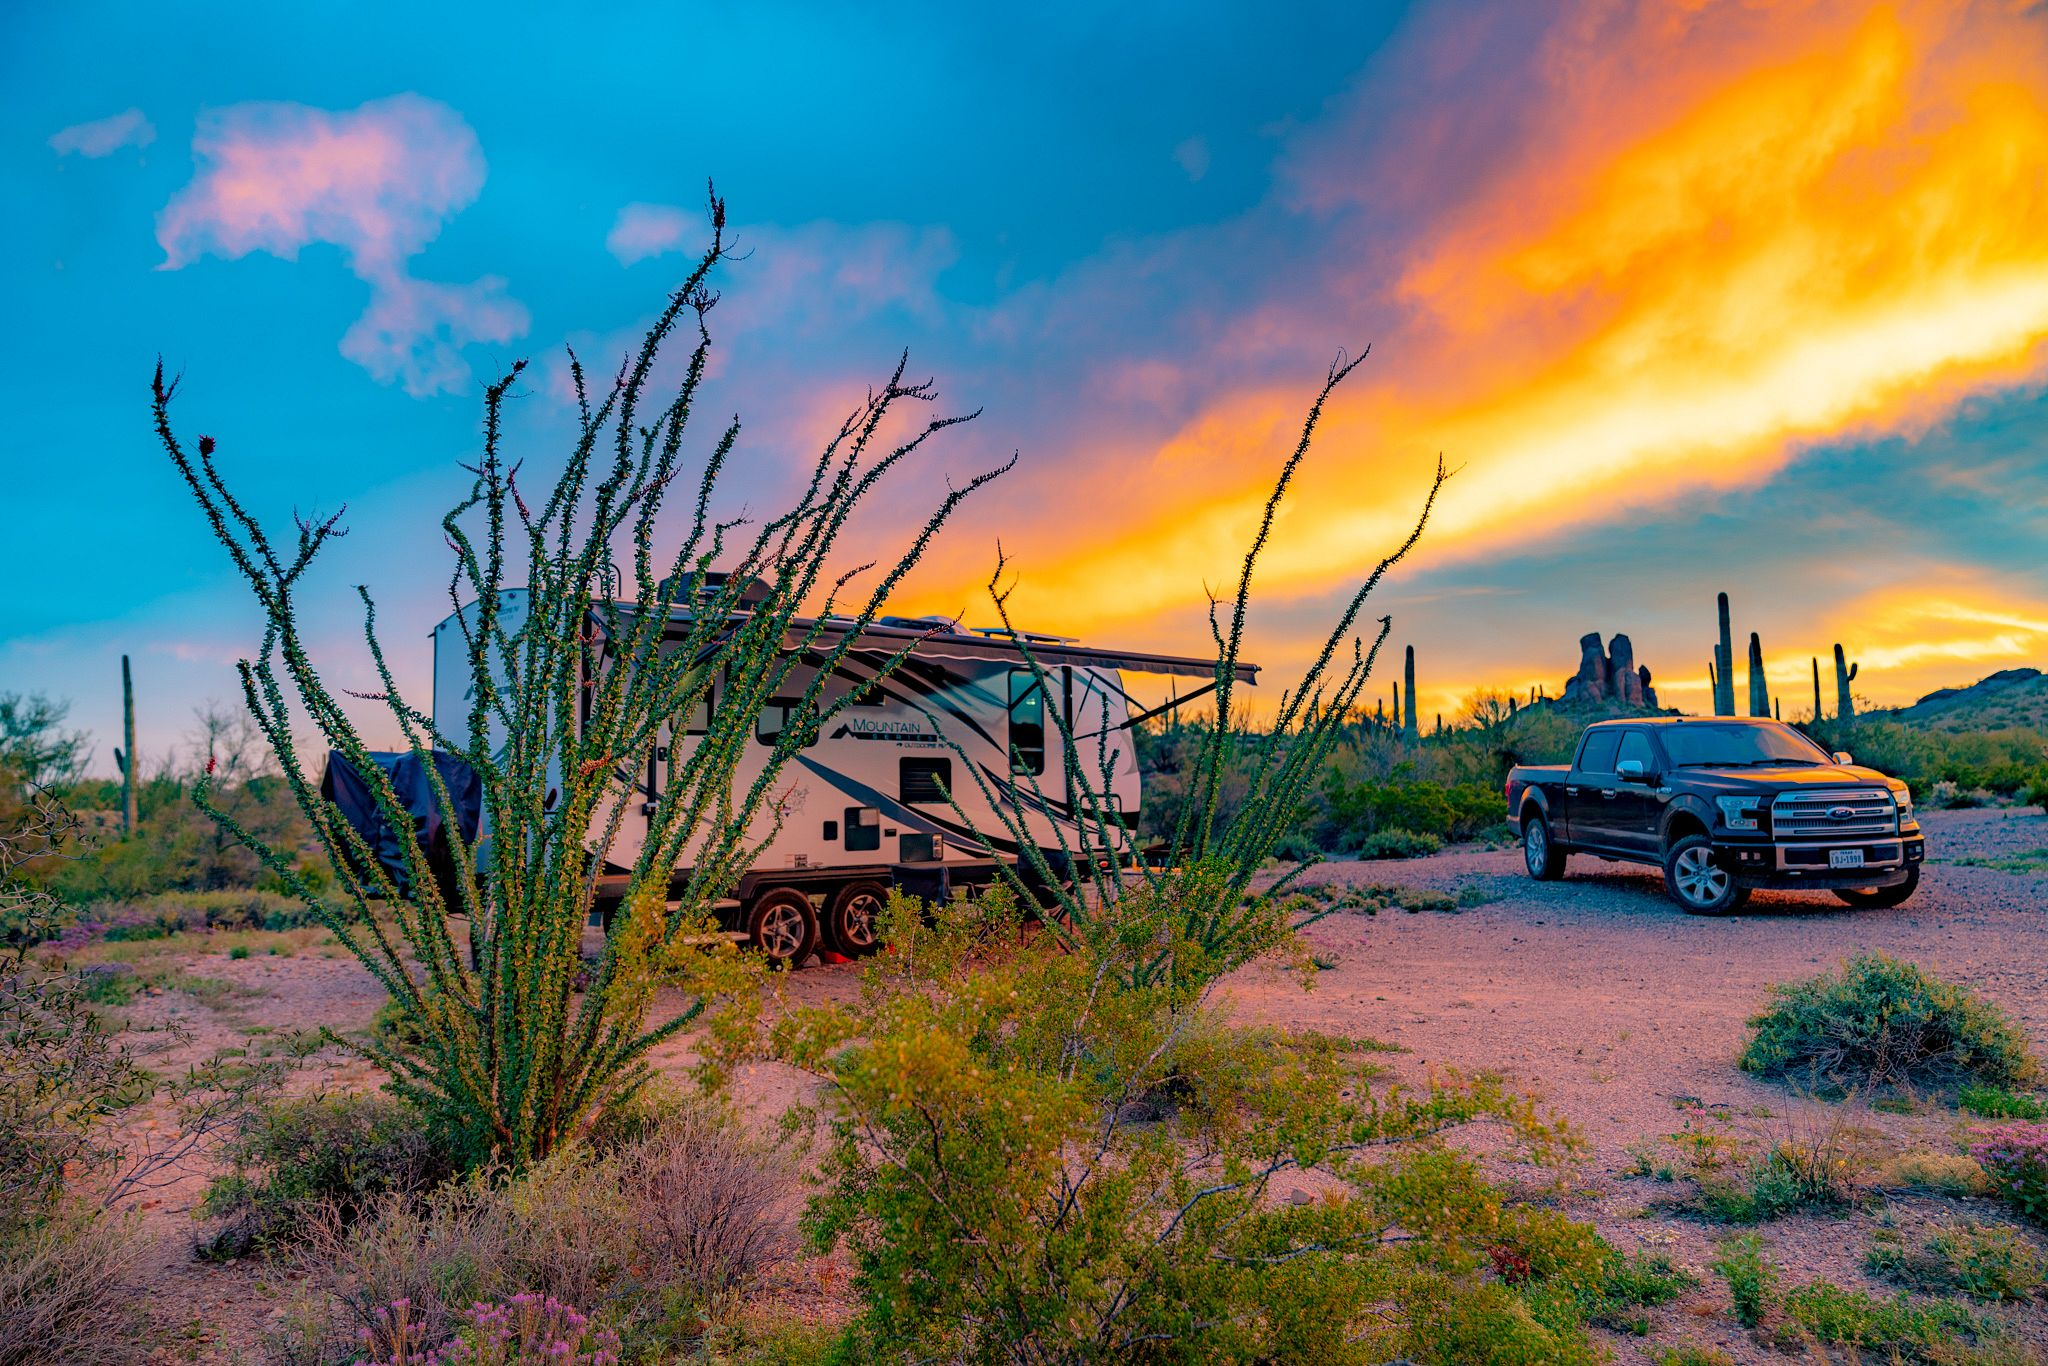 Darby Well Road Boondocking